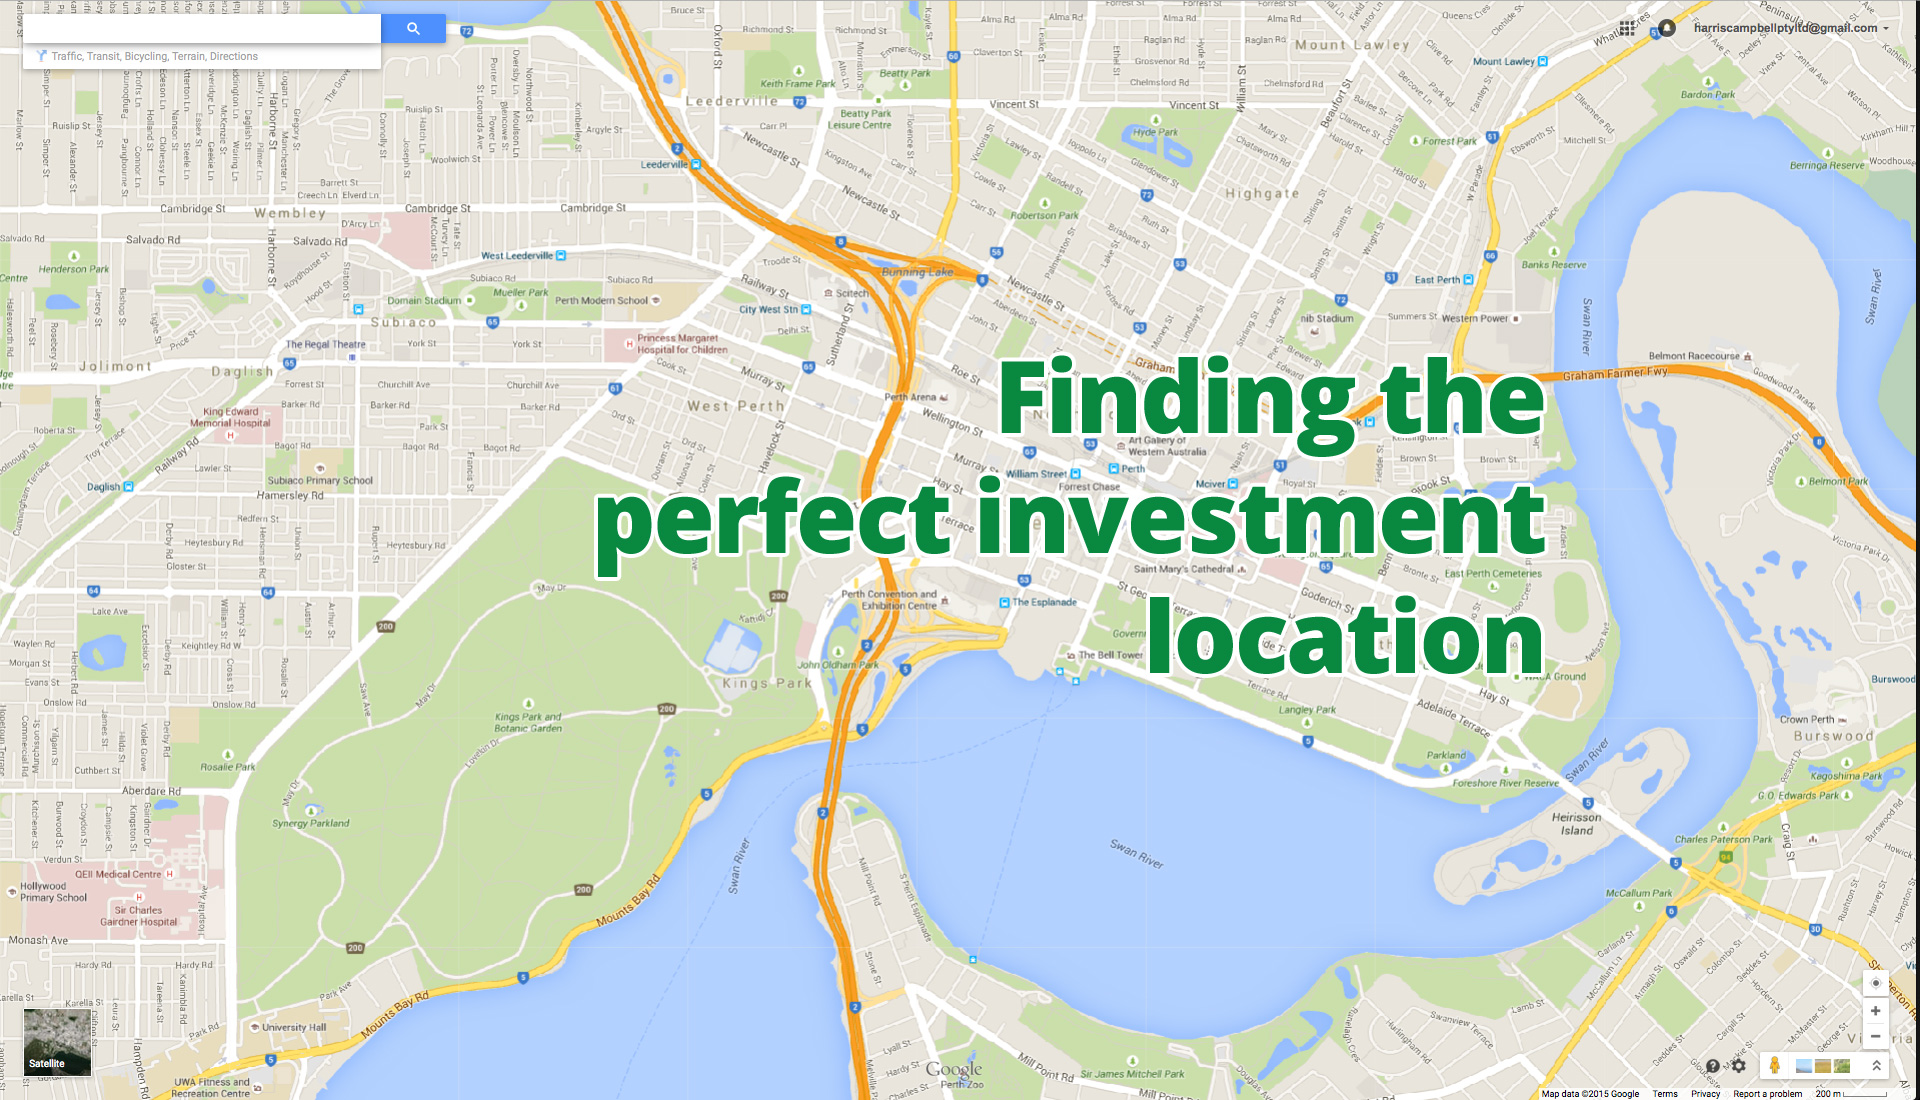 Finding the perfect investment location